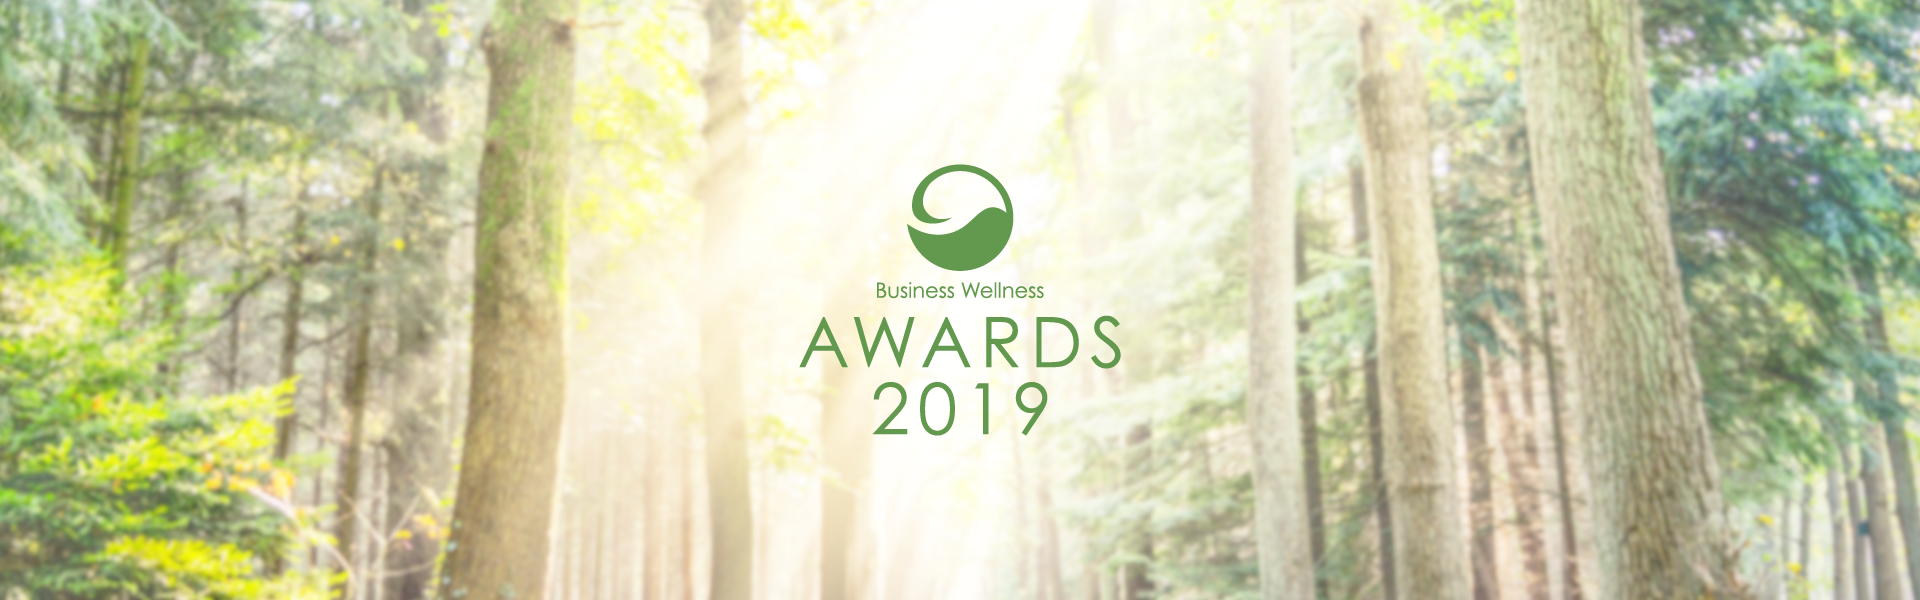 BusinessWellnessAwards_Banner_v4